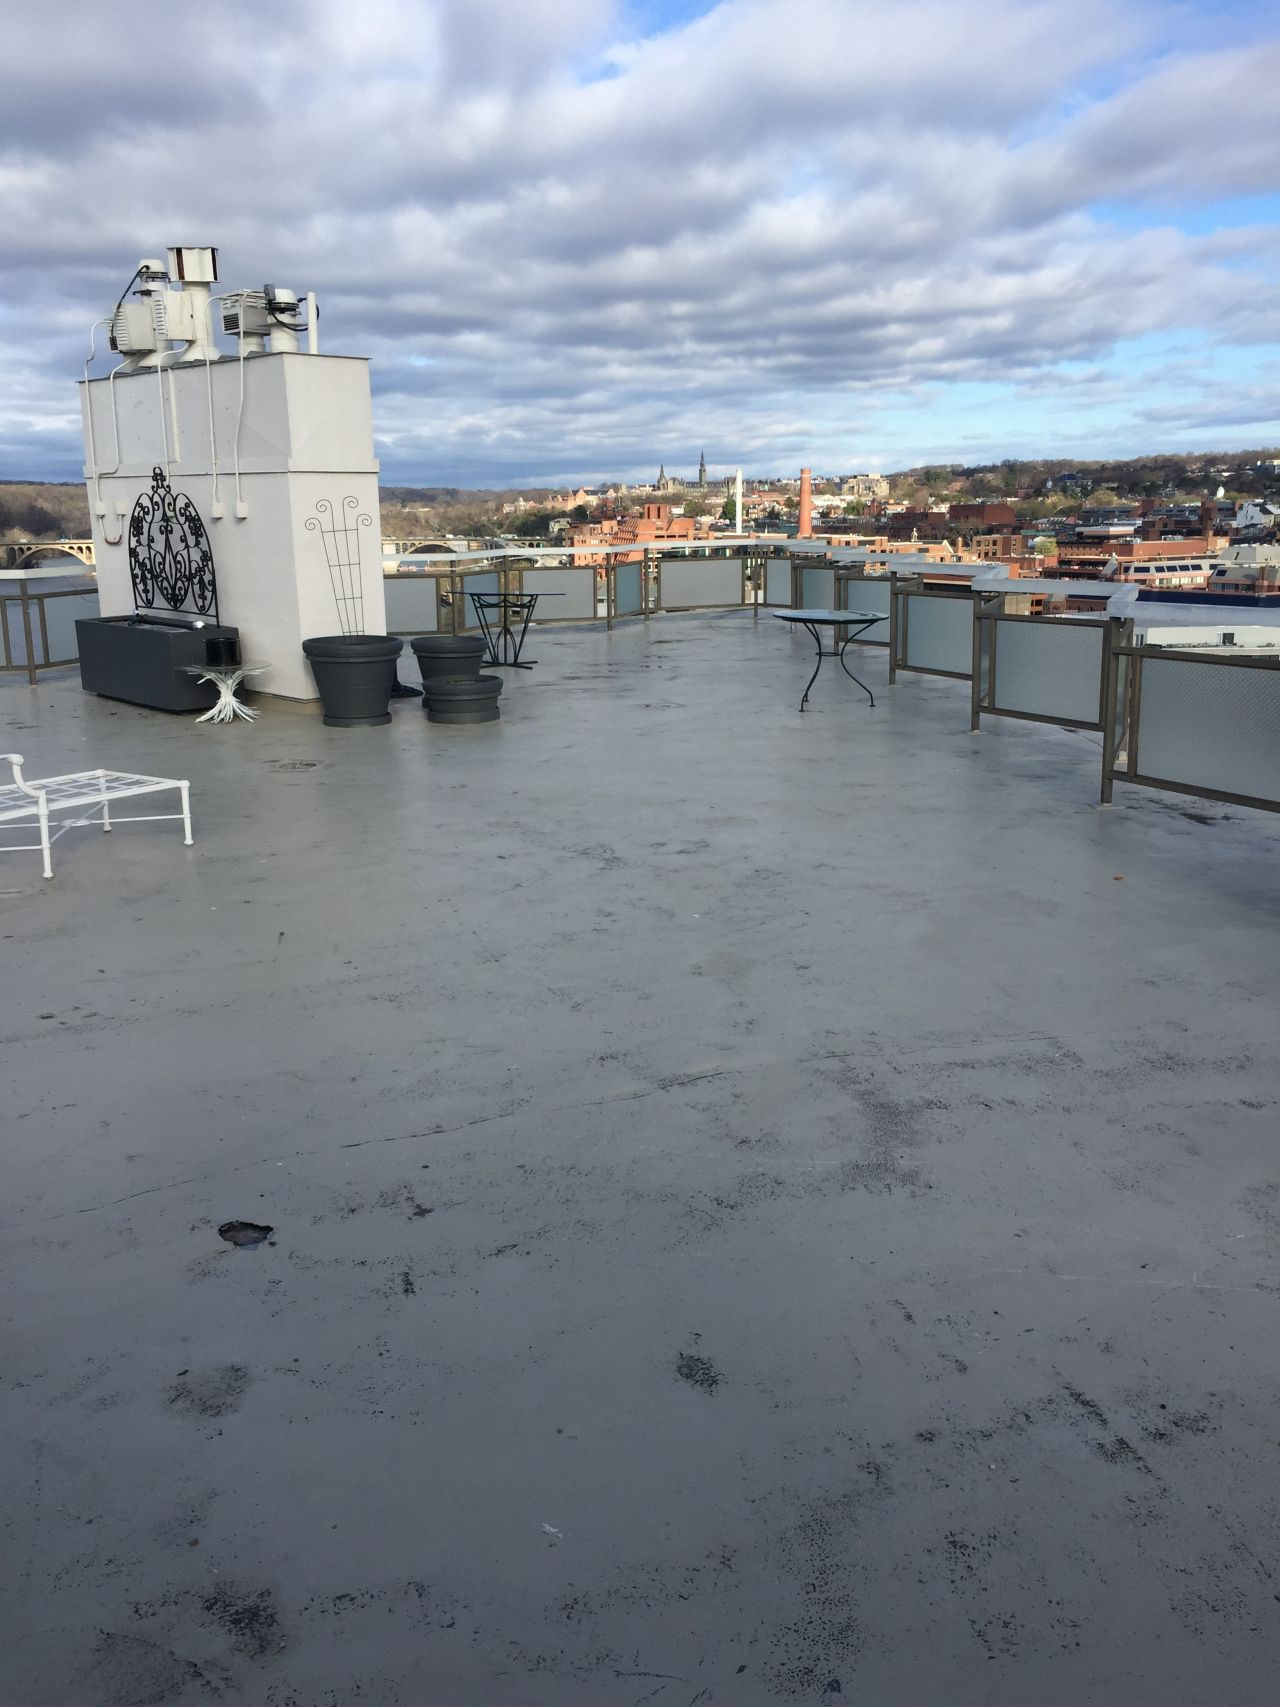 Watergate hotel roof before refurbishment